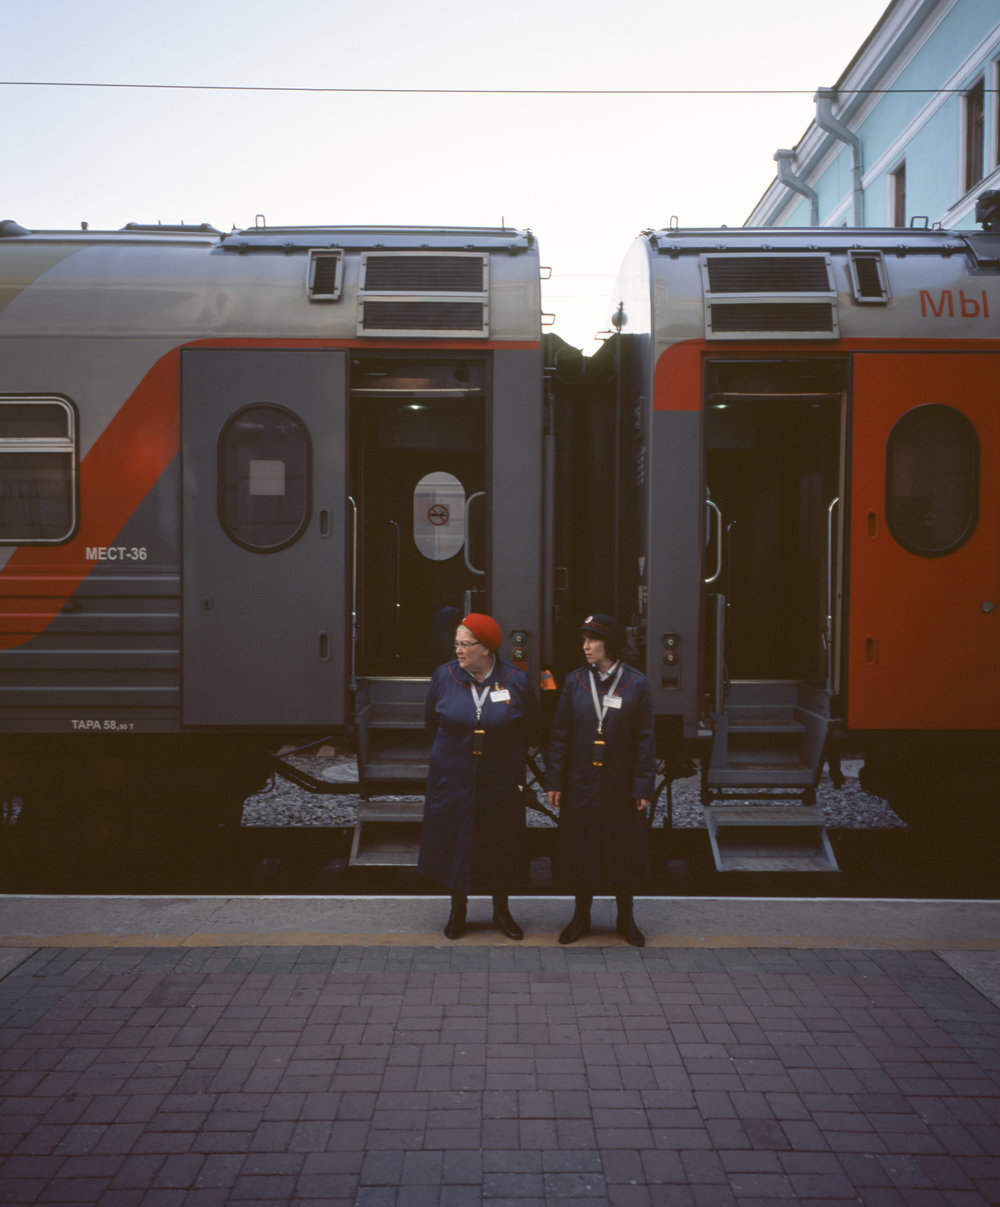 Our car attendant on the left, the other deluxe car's attendant on the right Fuji GF670w | Kodak Portra 400